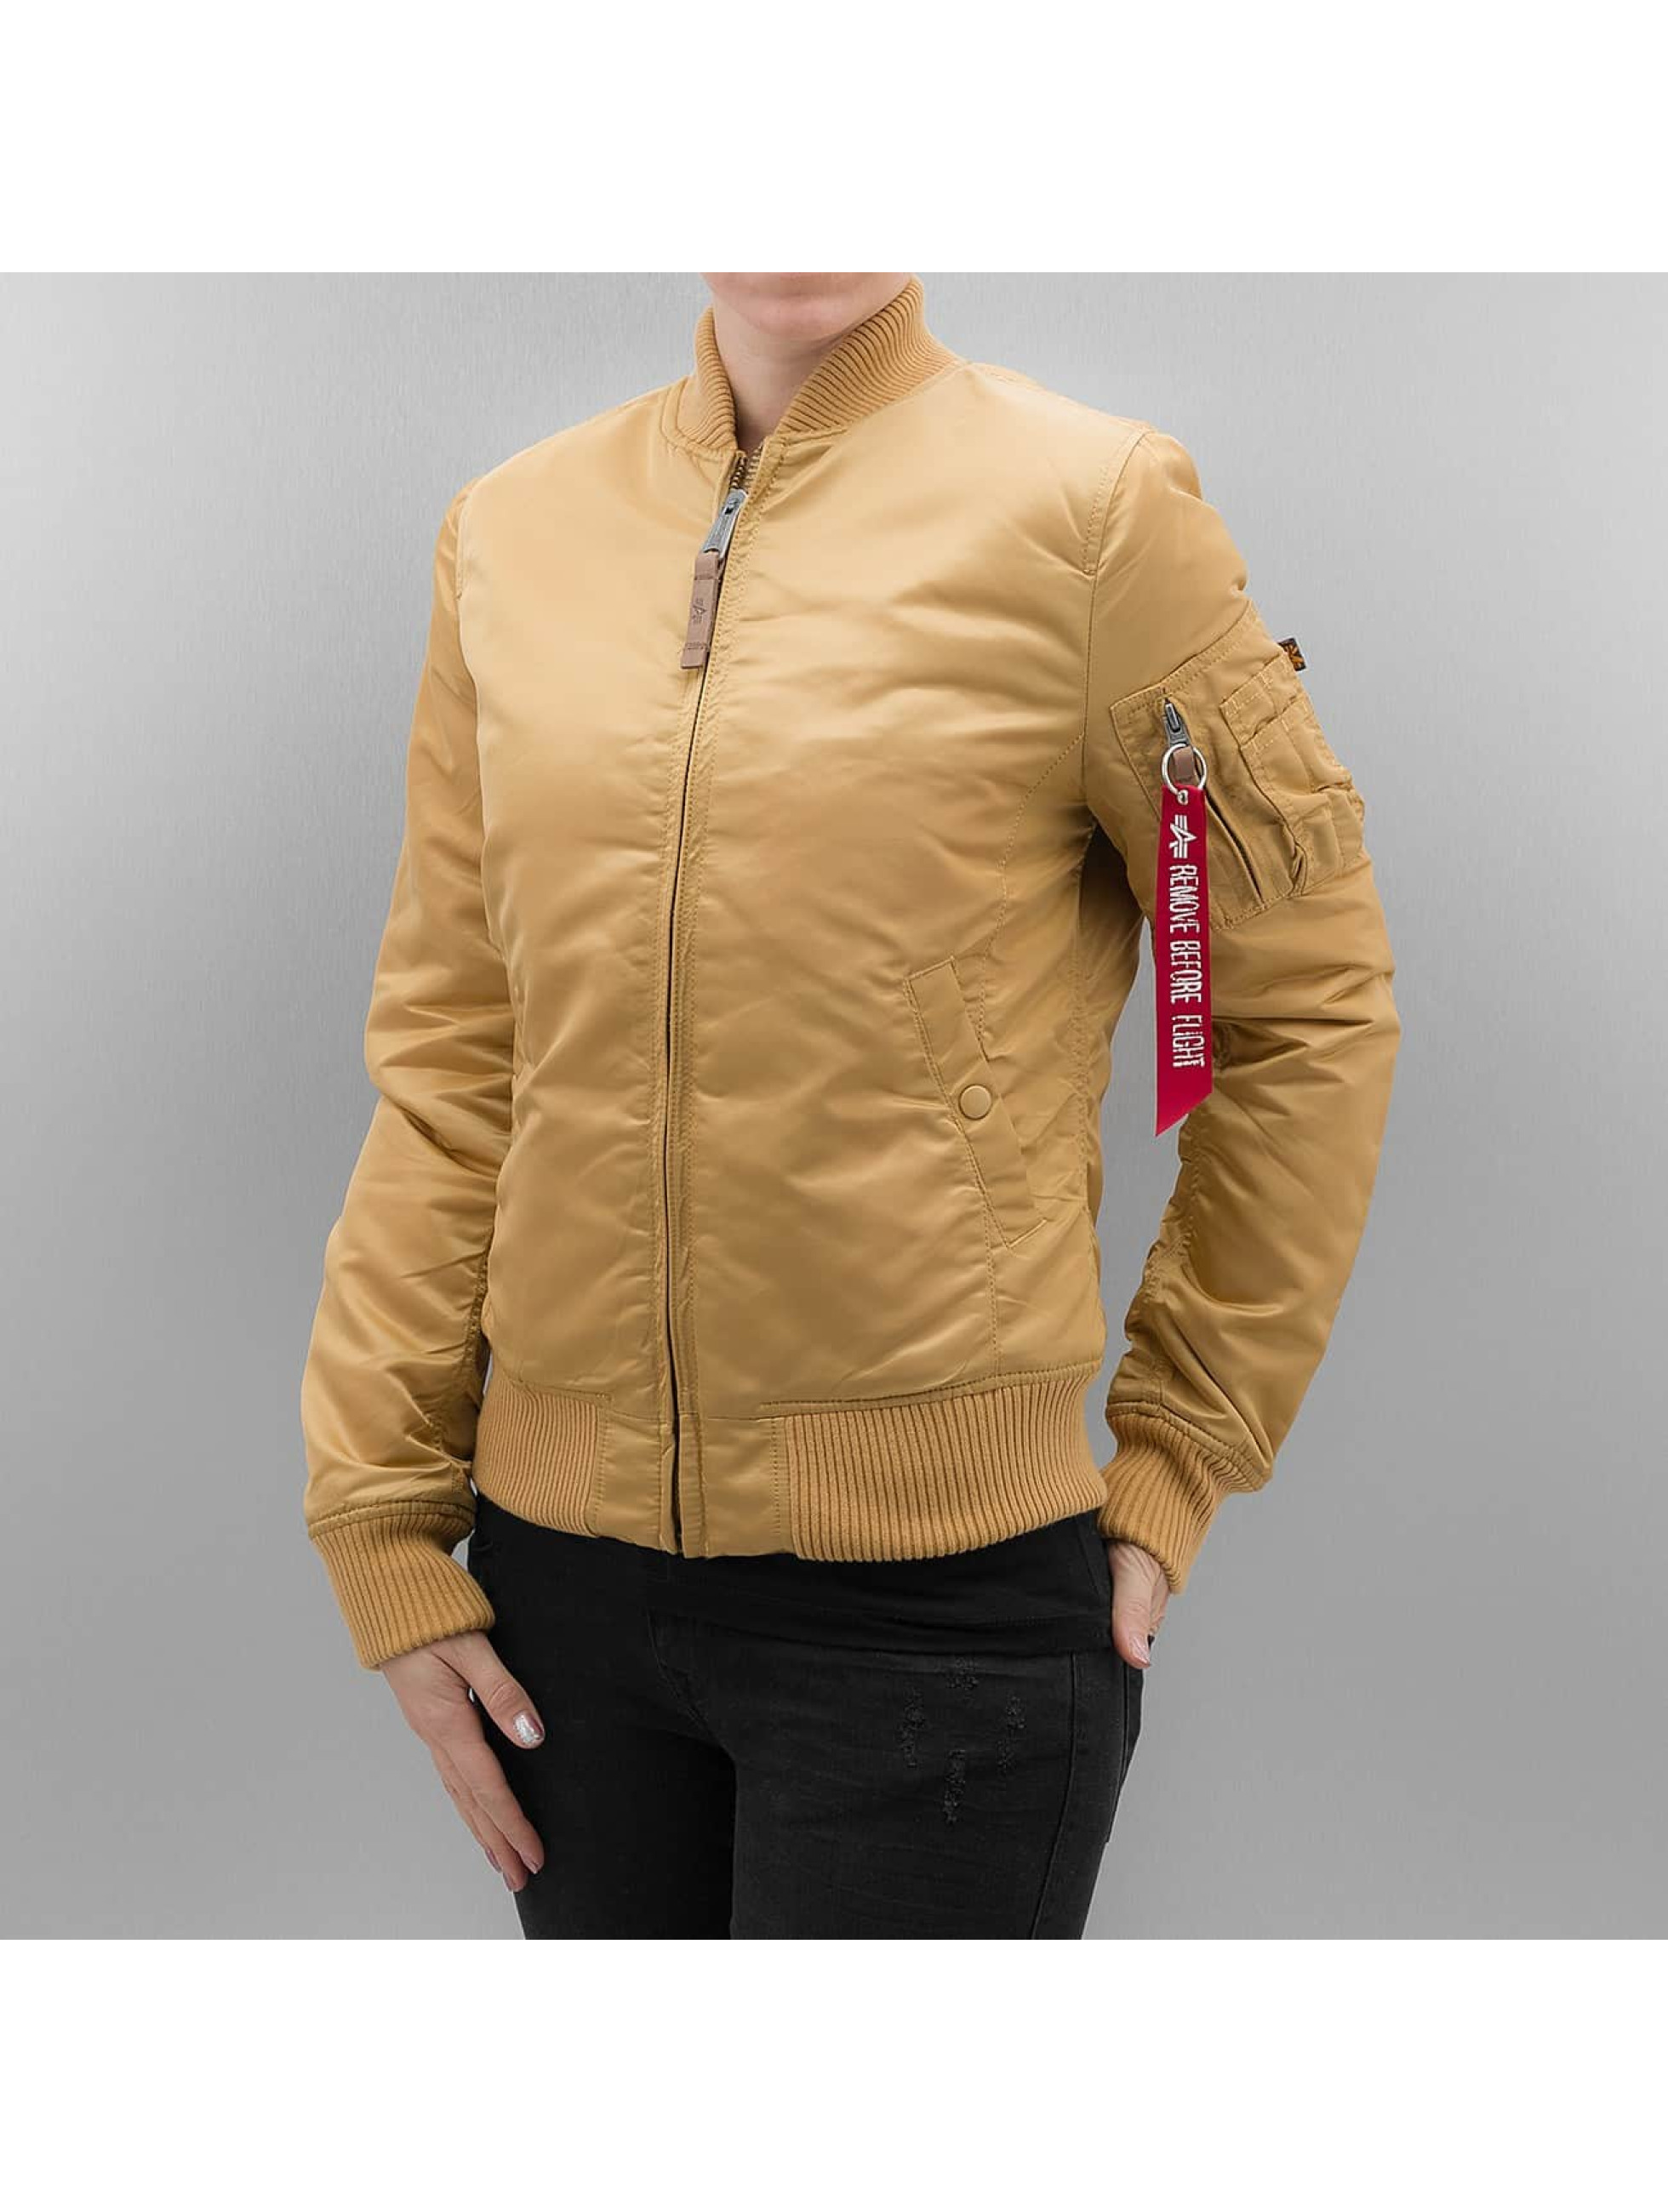 Alpha Industries Bomber jacket MA 1 VF 59 Women gold